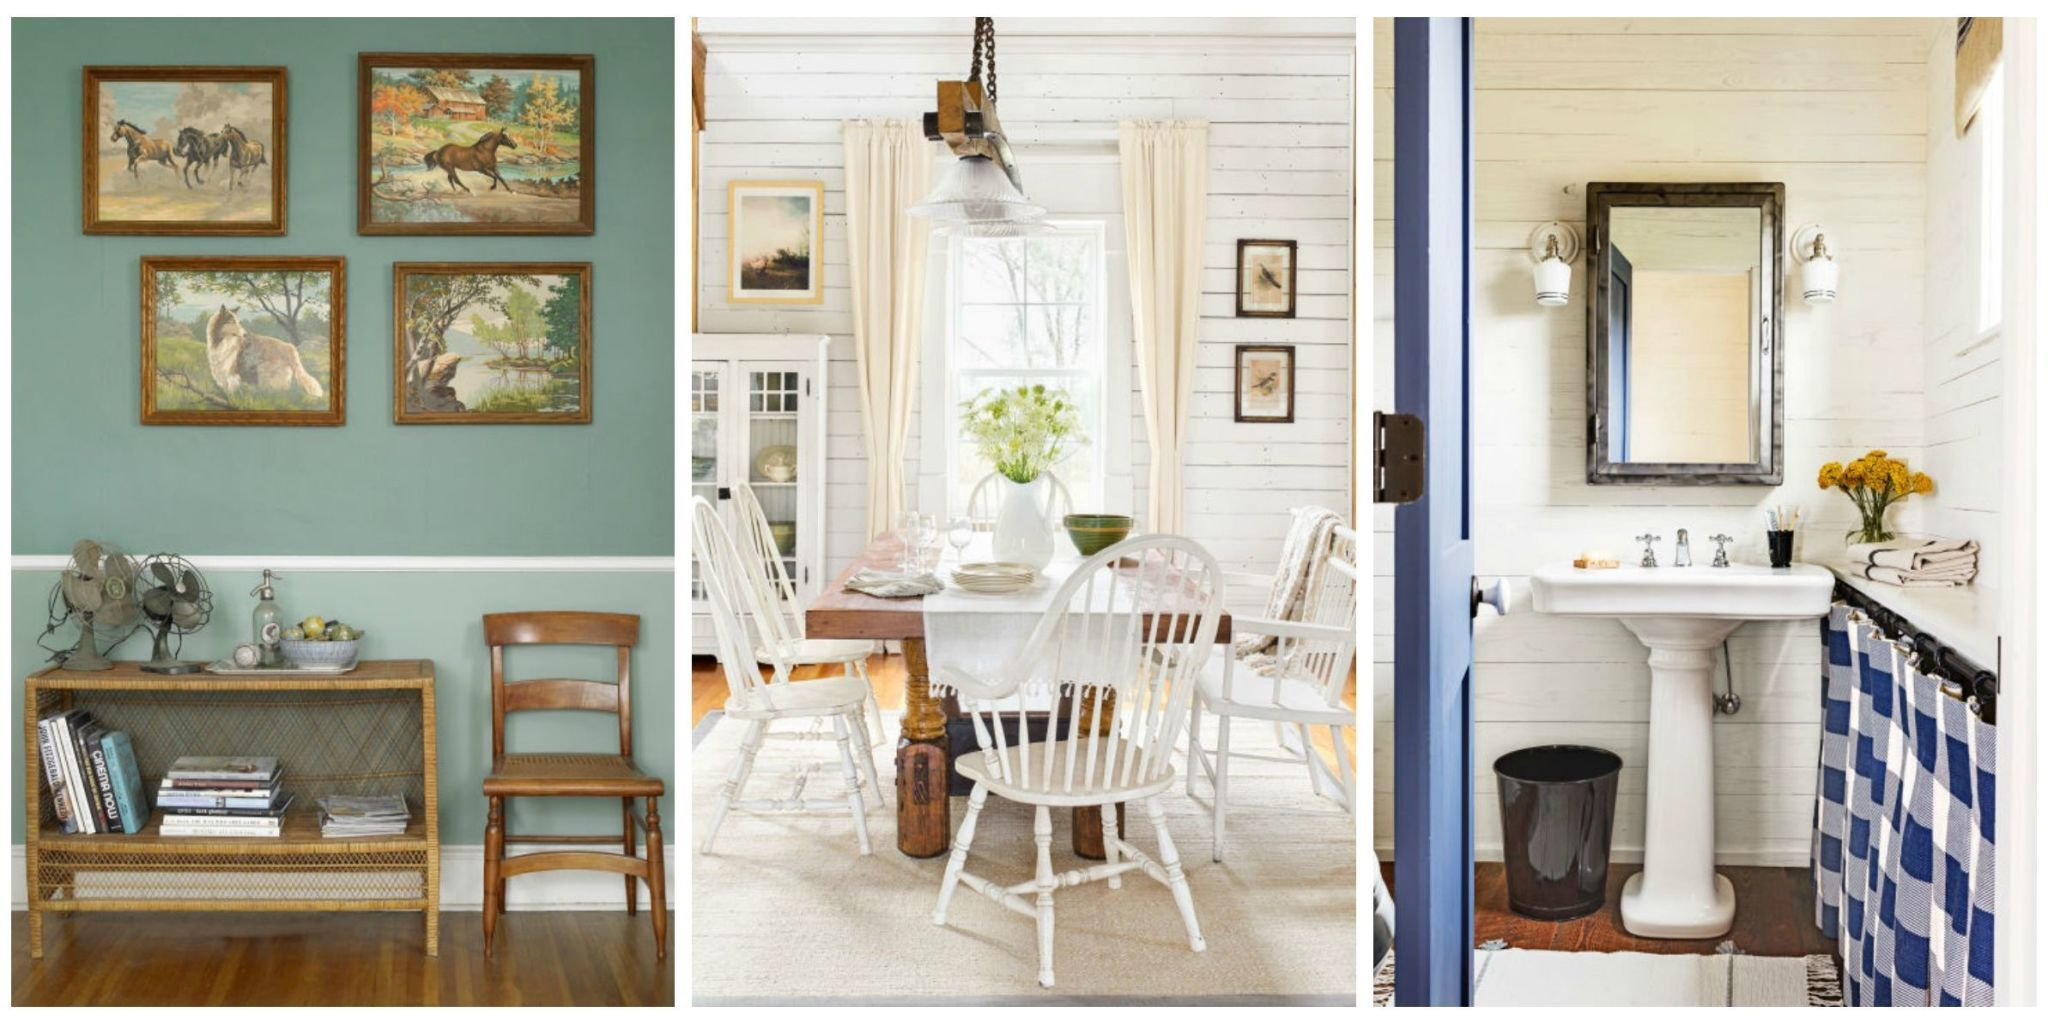 30+ Inexpensive Decorating Ideas